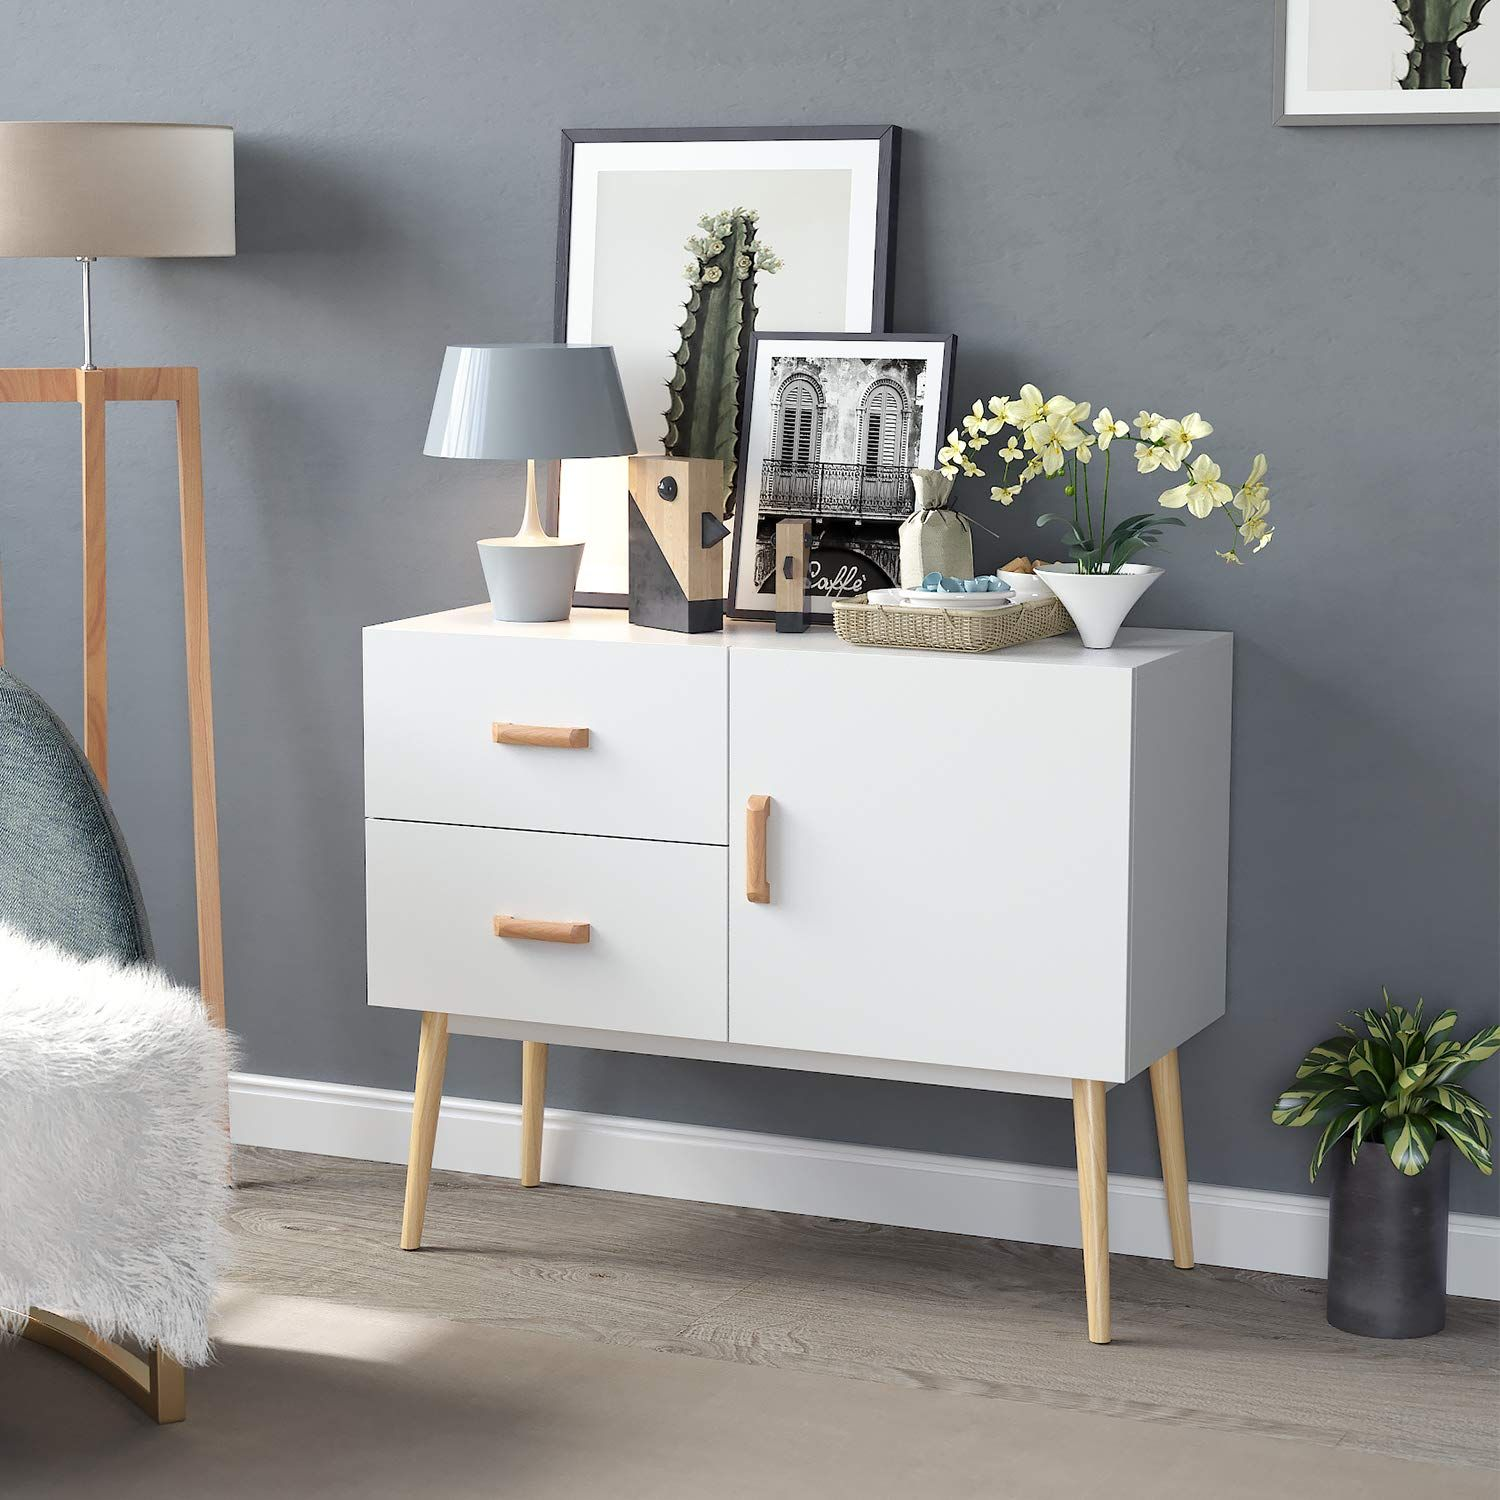 Homfa Wooden Sideboard Storage Cupboard